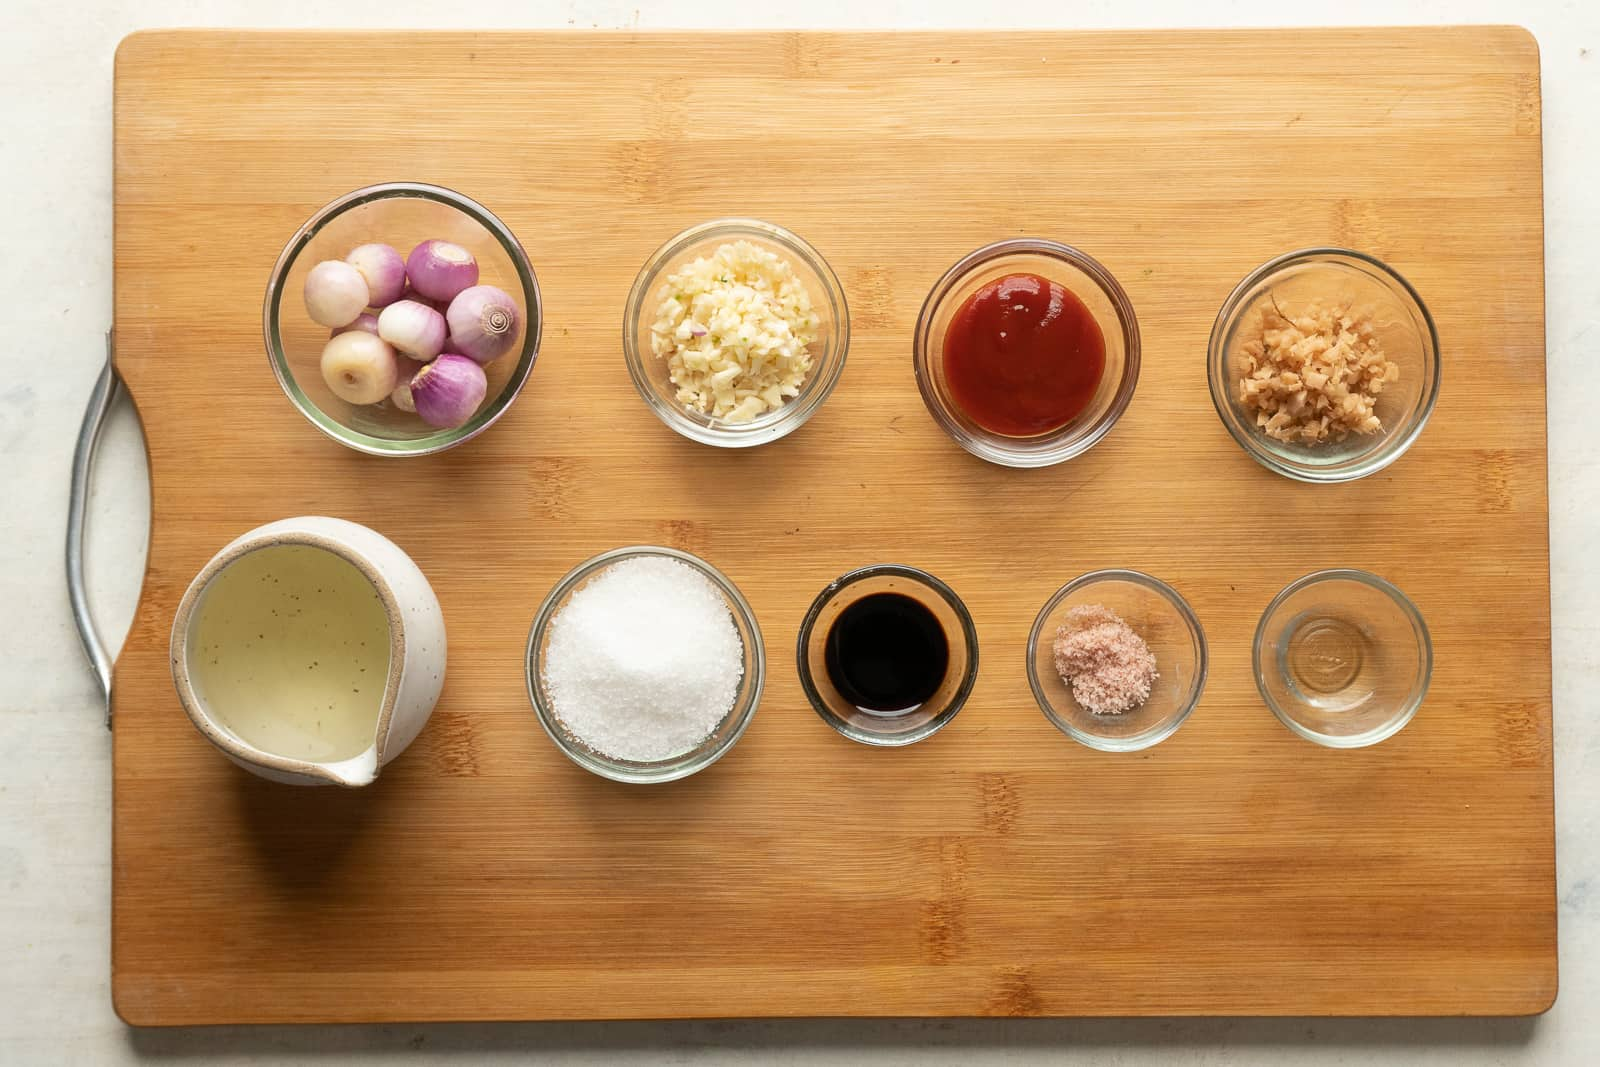 All the ingredients required for schezwan sauce are pictures on a wooden board, except chillies and hot water